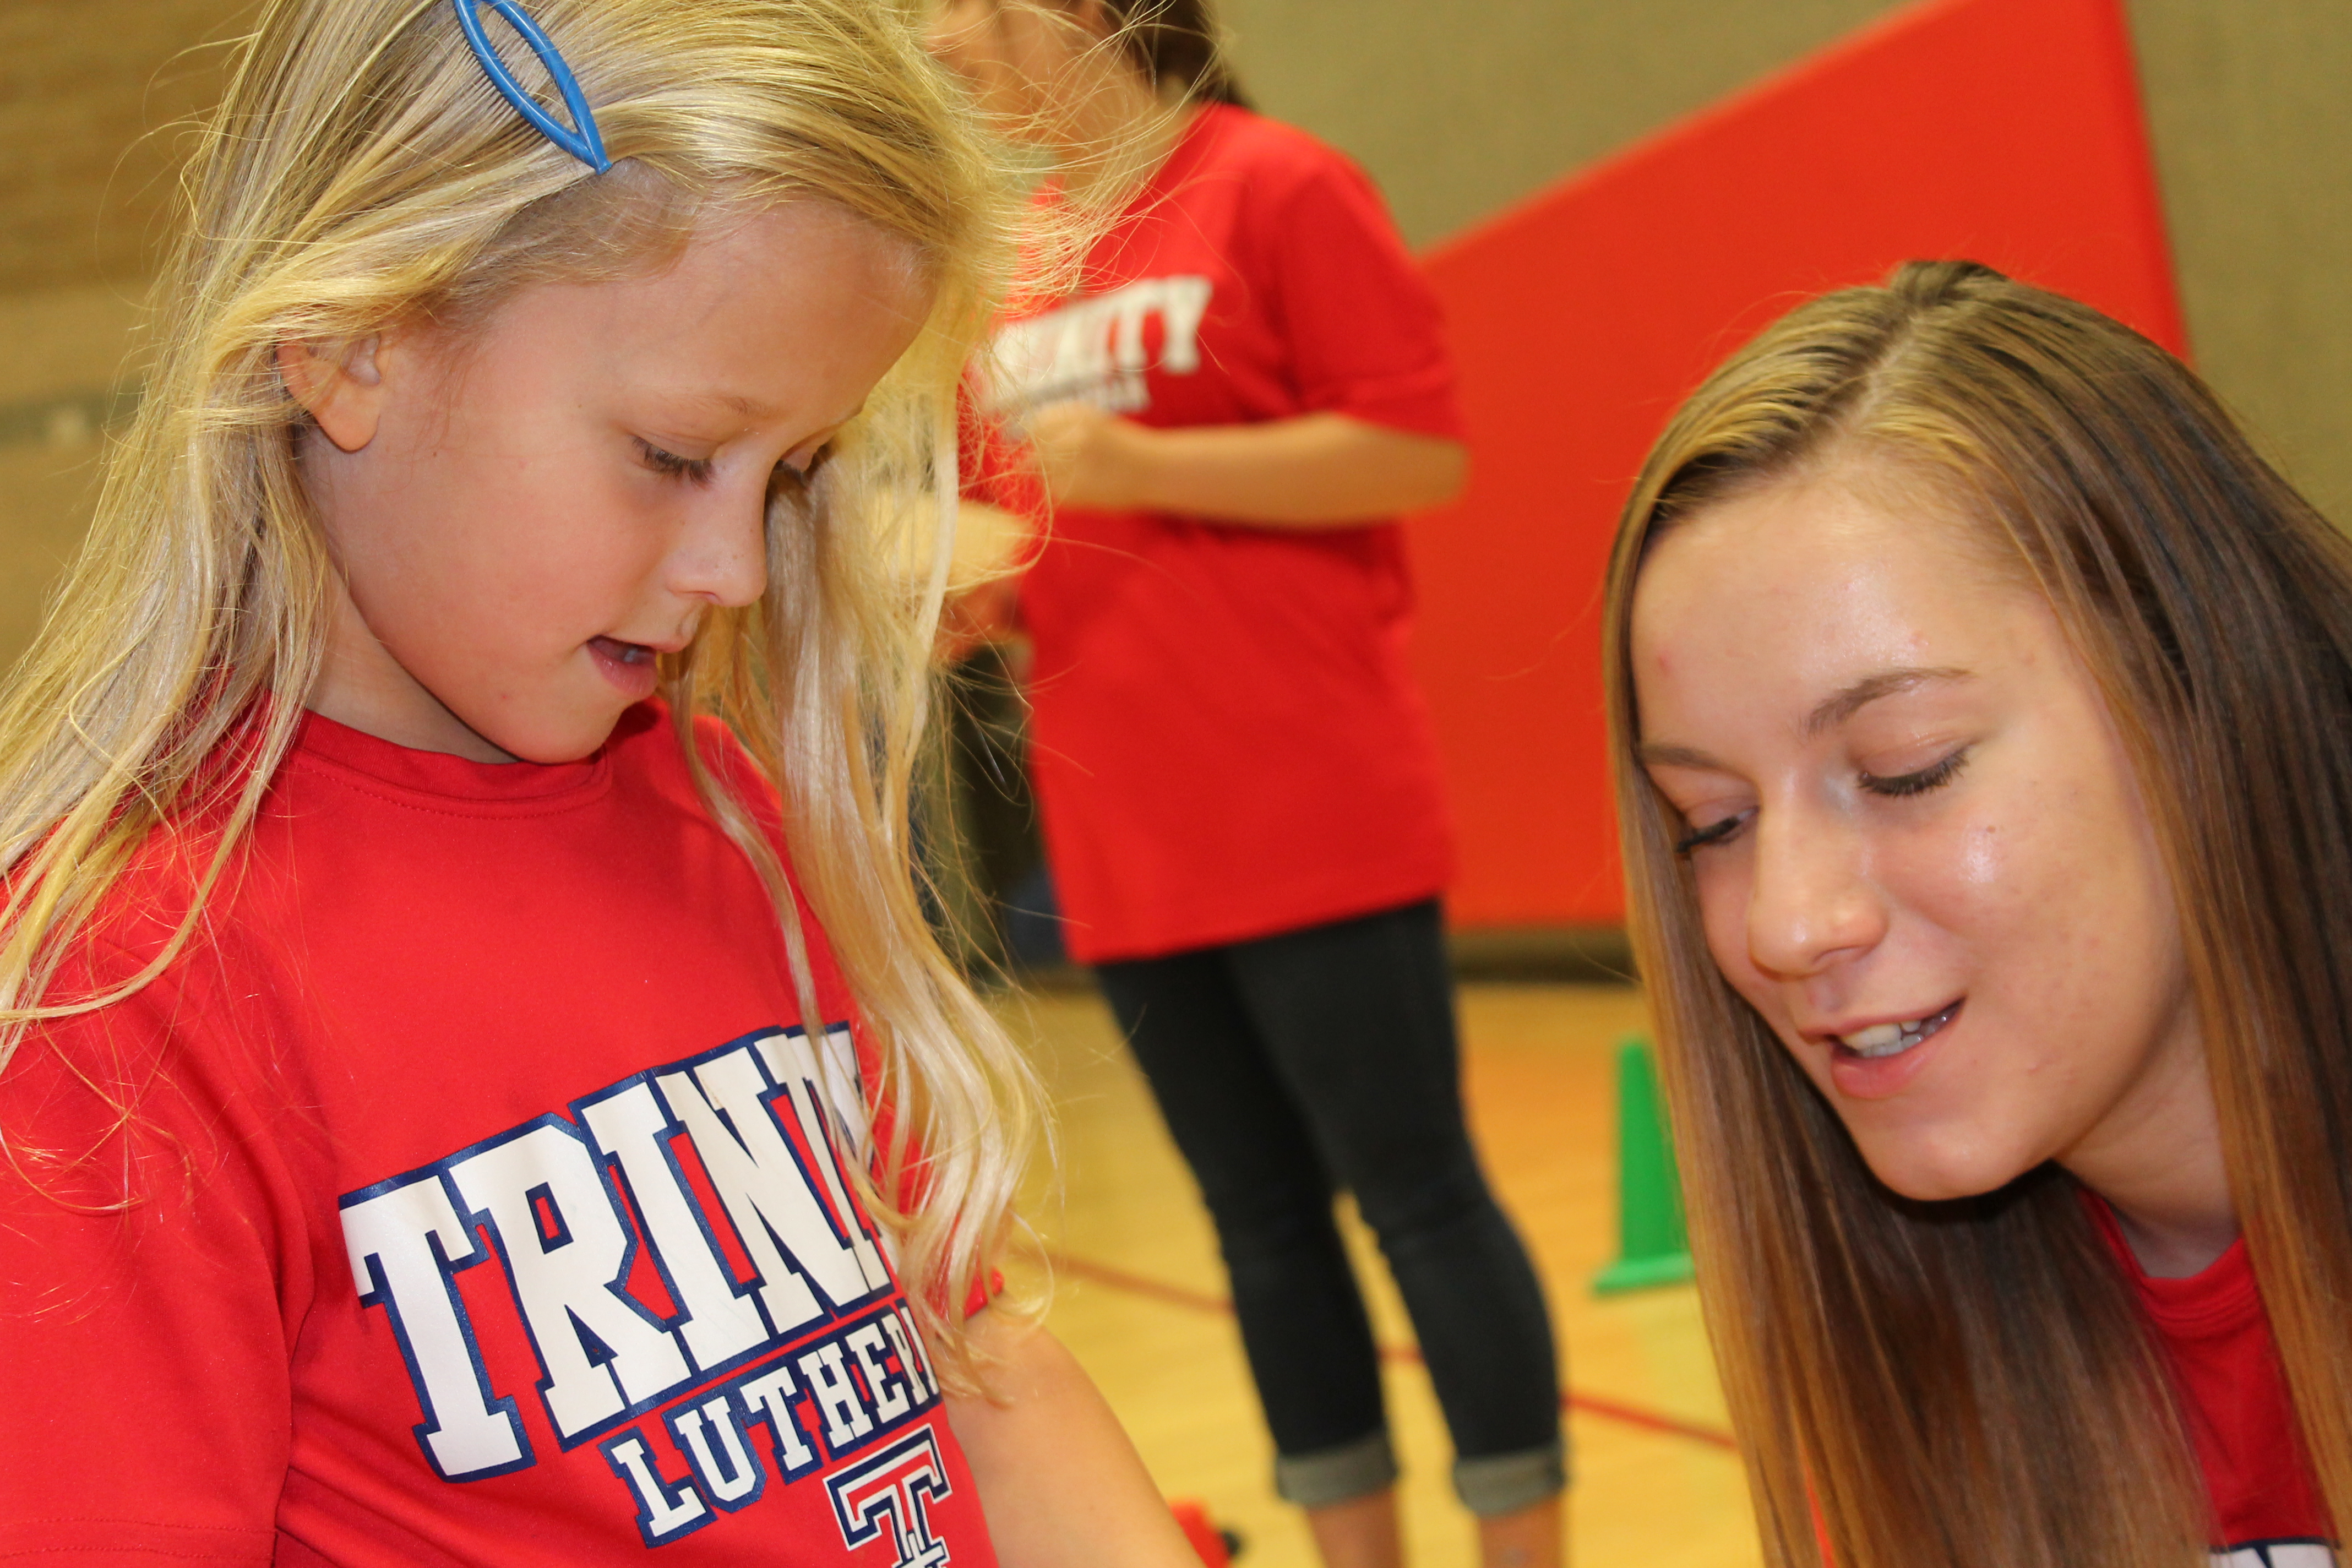 Saints for Pioneers – Raises over 12,000 dollars for LSA